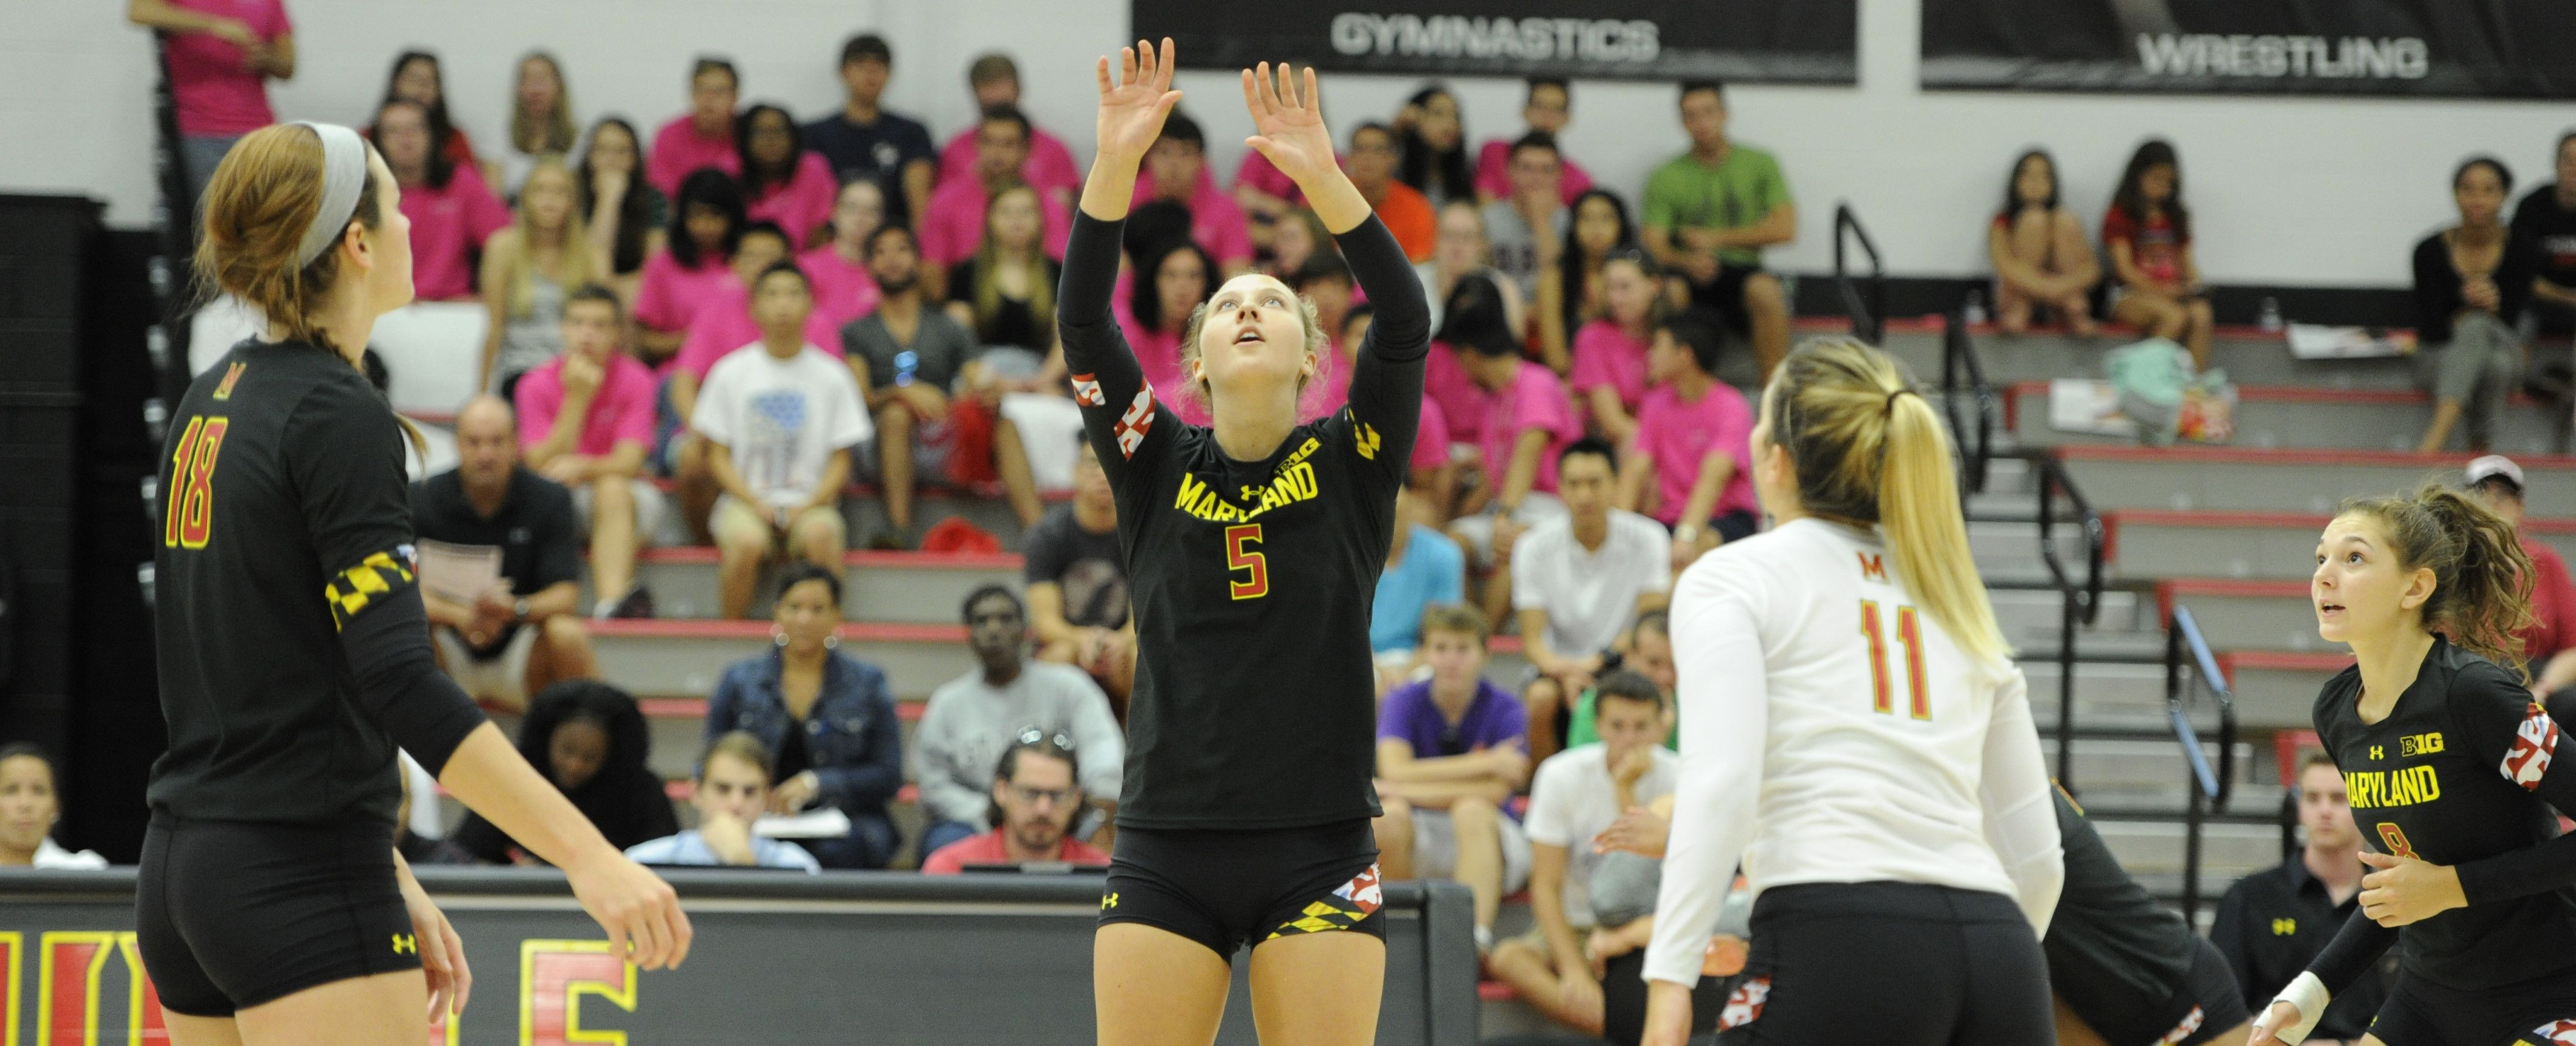 Terps Split Second Day Of Kristen Dickmann Invite University Of Maryland Athletics Volleyball News Volleyball Team Athlete